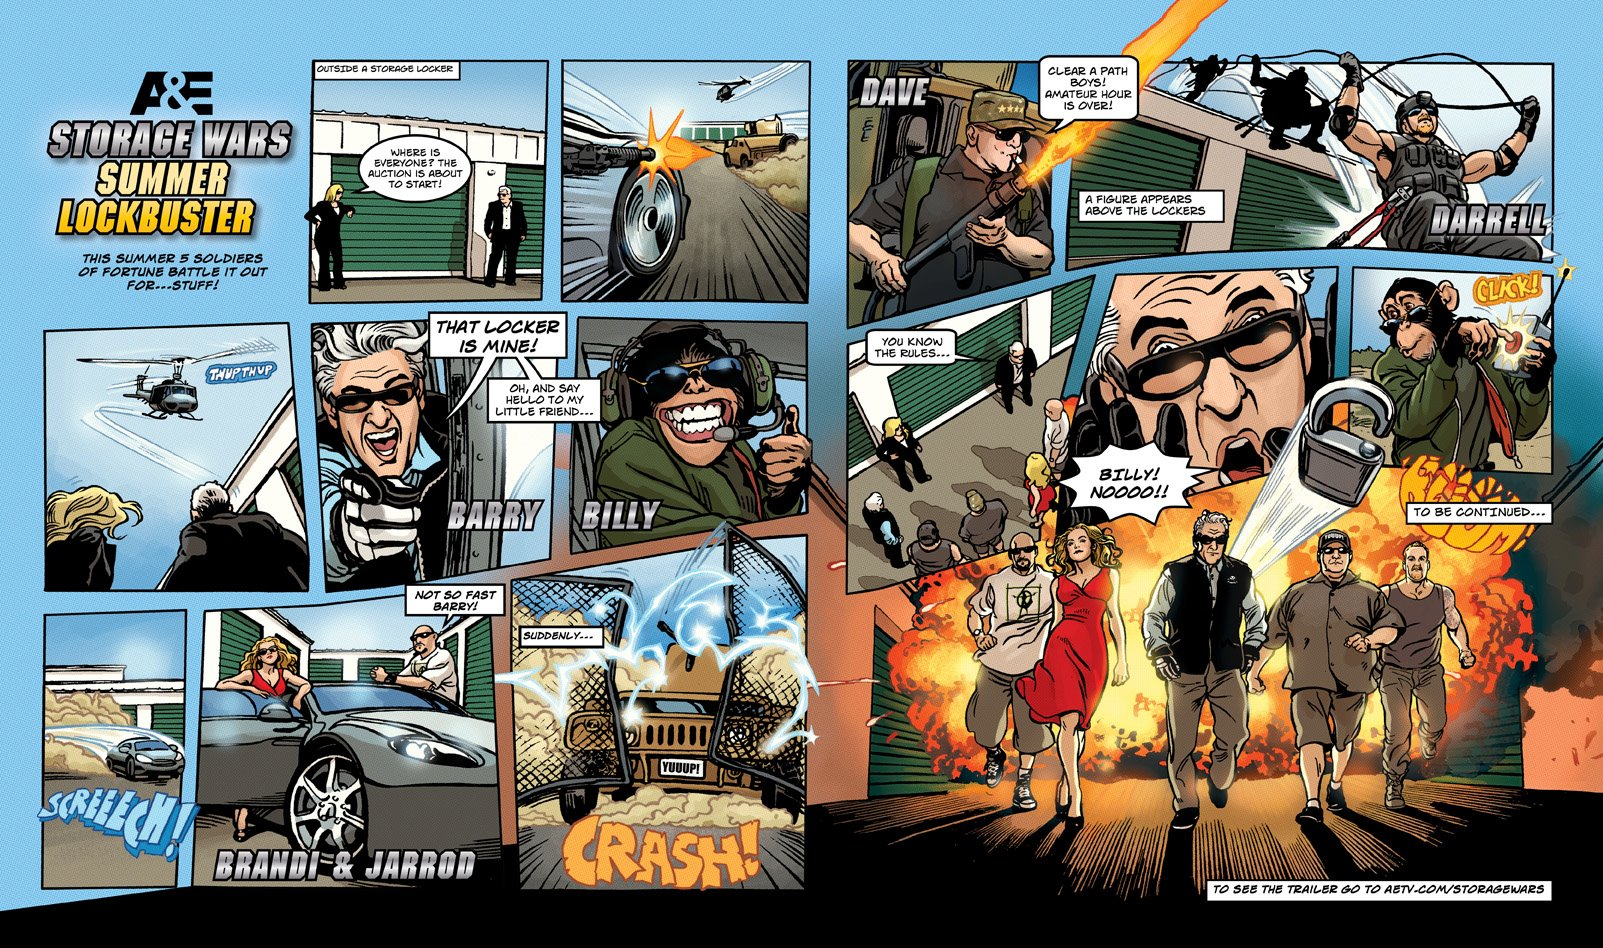 Storage Wars Summer Lockbuster comic book with Brandi Passante Barry